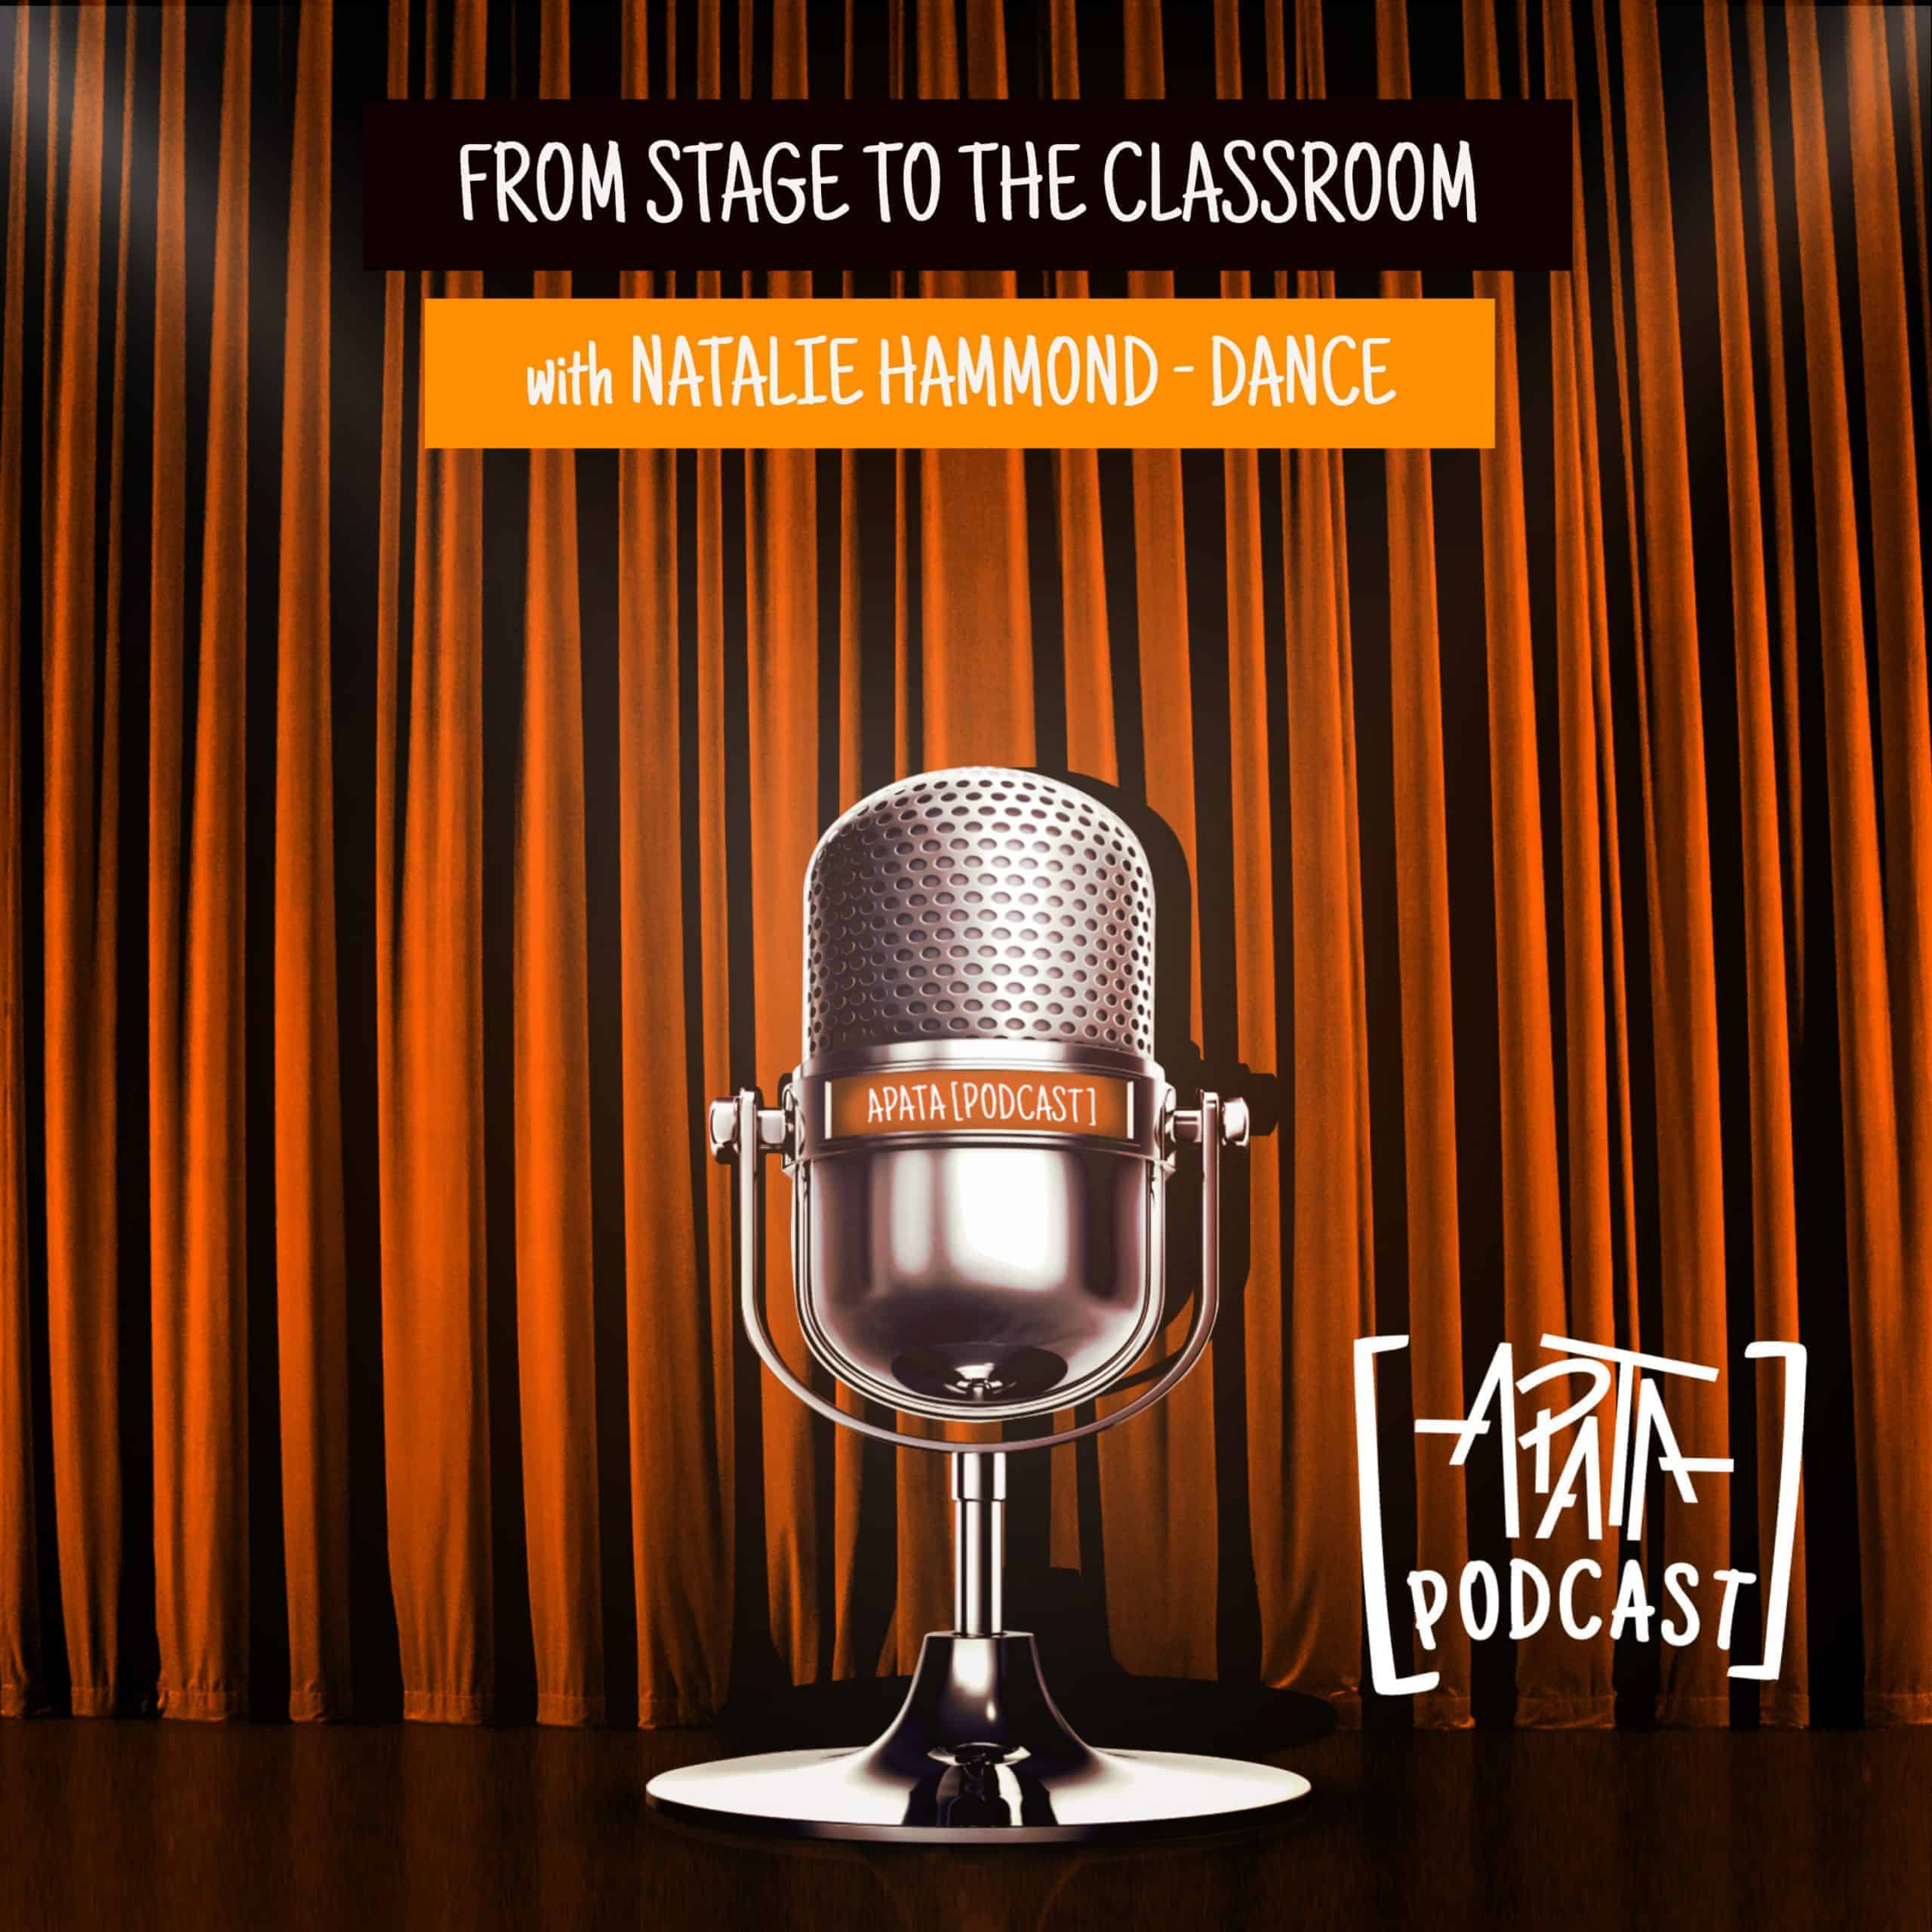 From Stage to the Classroom - With Natalie Hammond